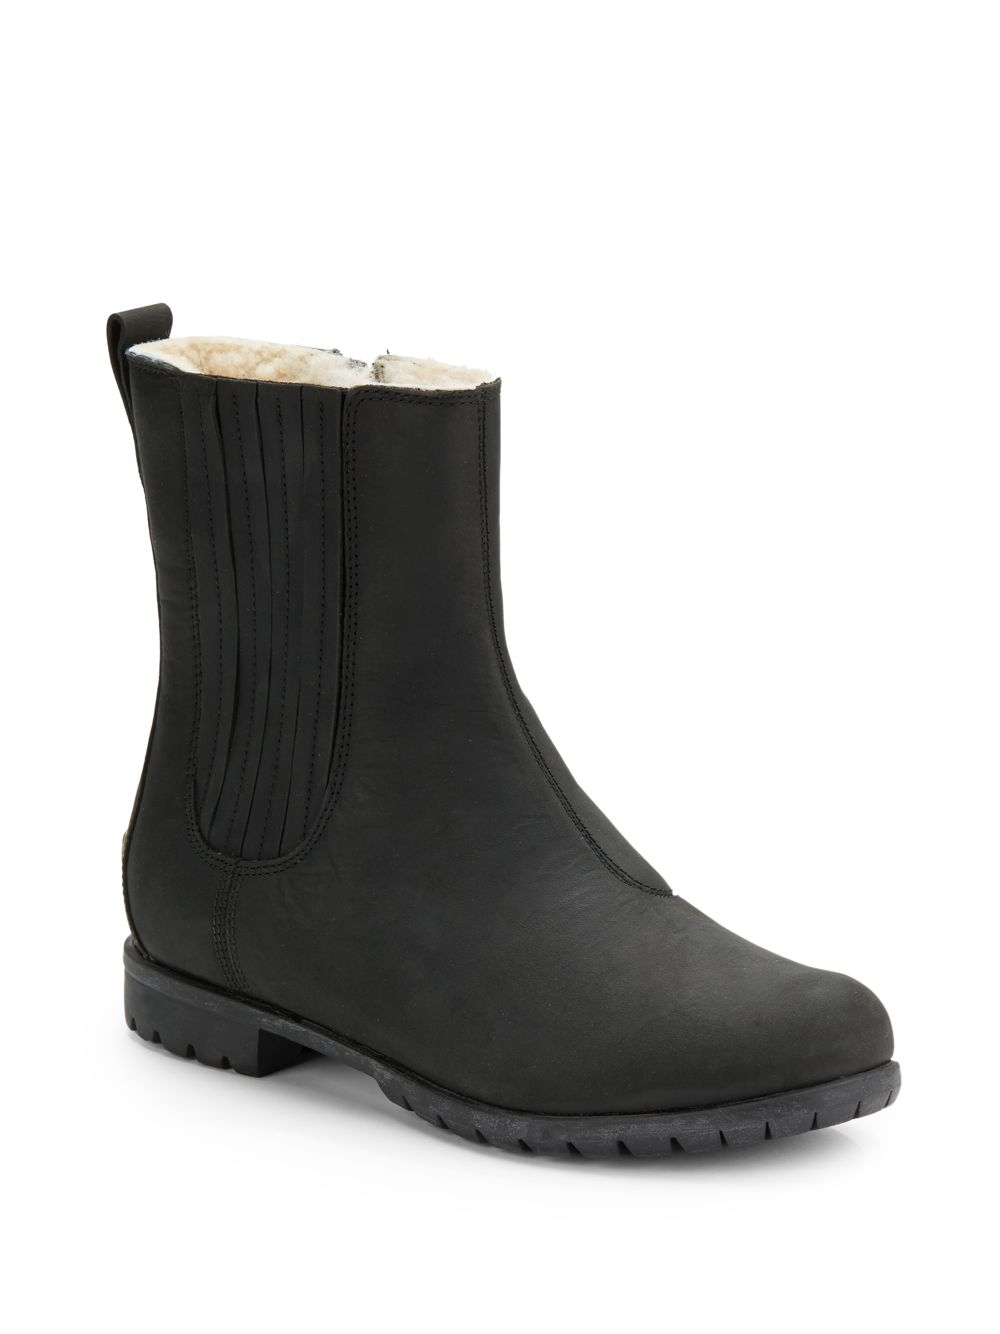 Ugg Ramos Sidezip Short Leather Boots in Black | Lyst